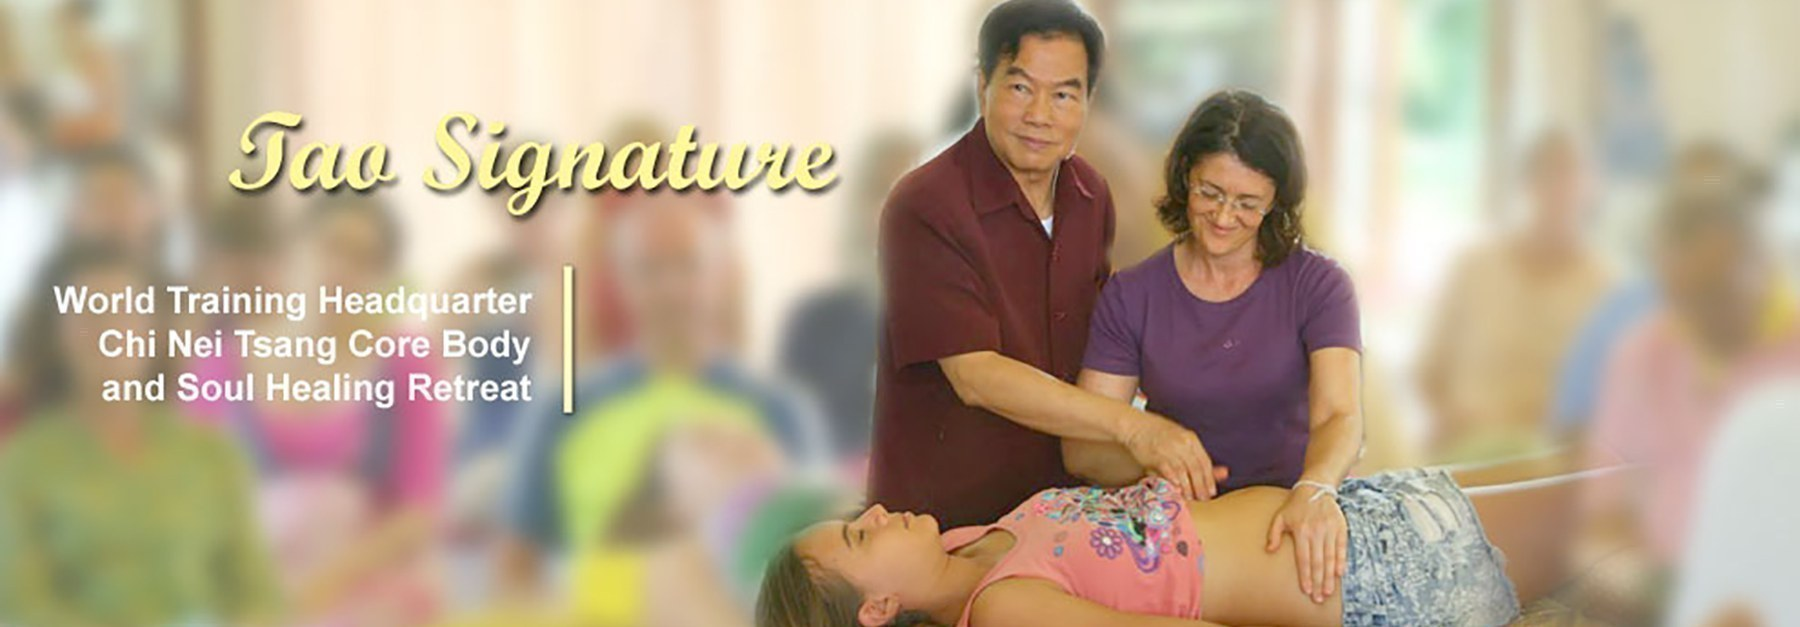 Tao Signature – World Training Headquarter Chi Nei Tsang Core Body and Soul Healing Retreat